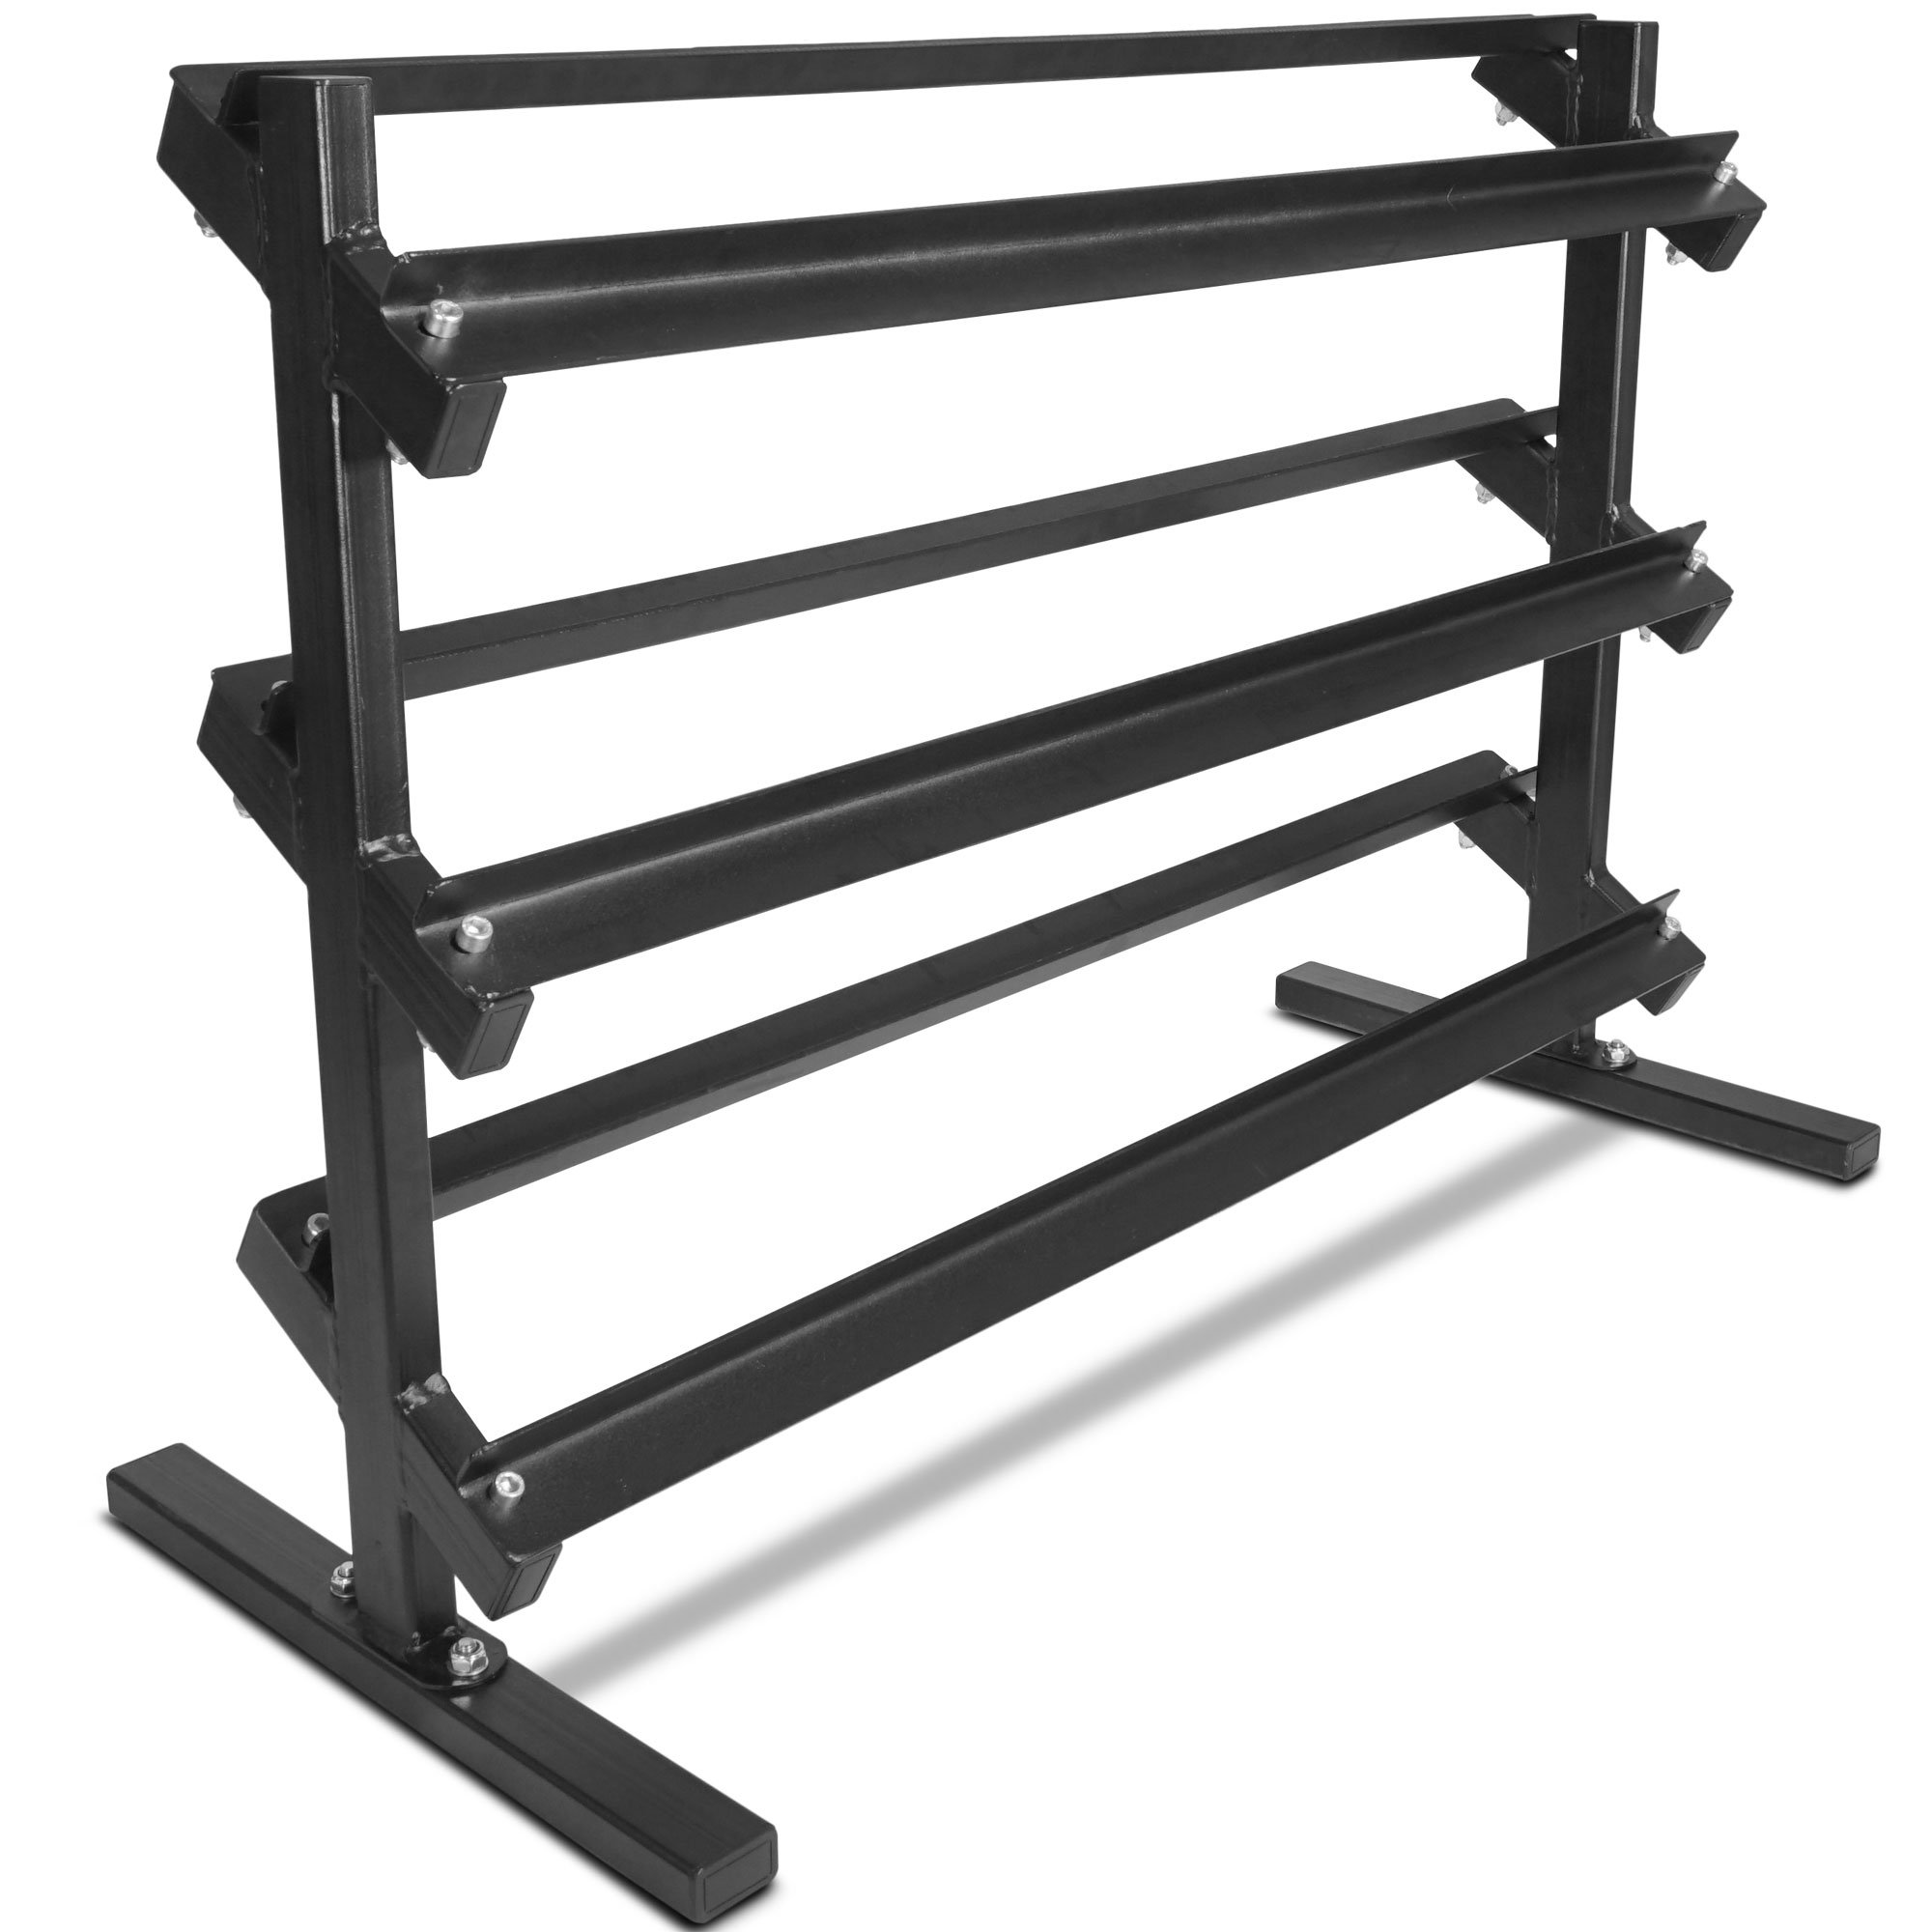 Titan Fitness 3 Tier Dumbbell Rack HD Stand for Workout Weights